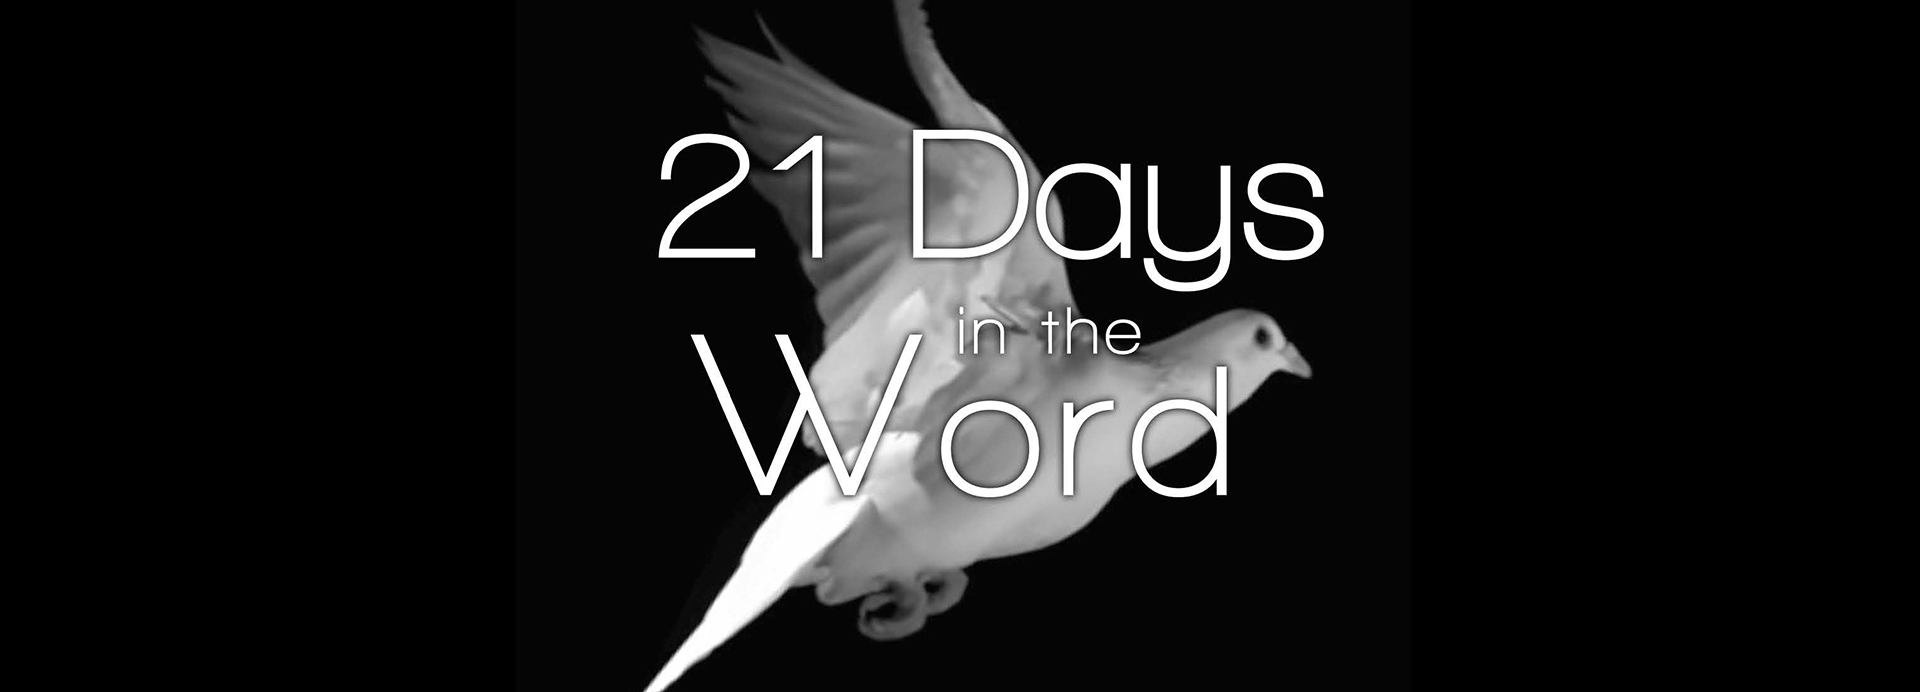 21 days in the word